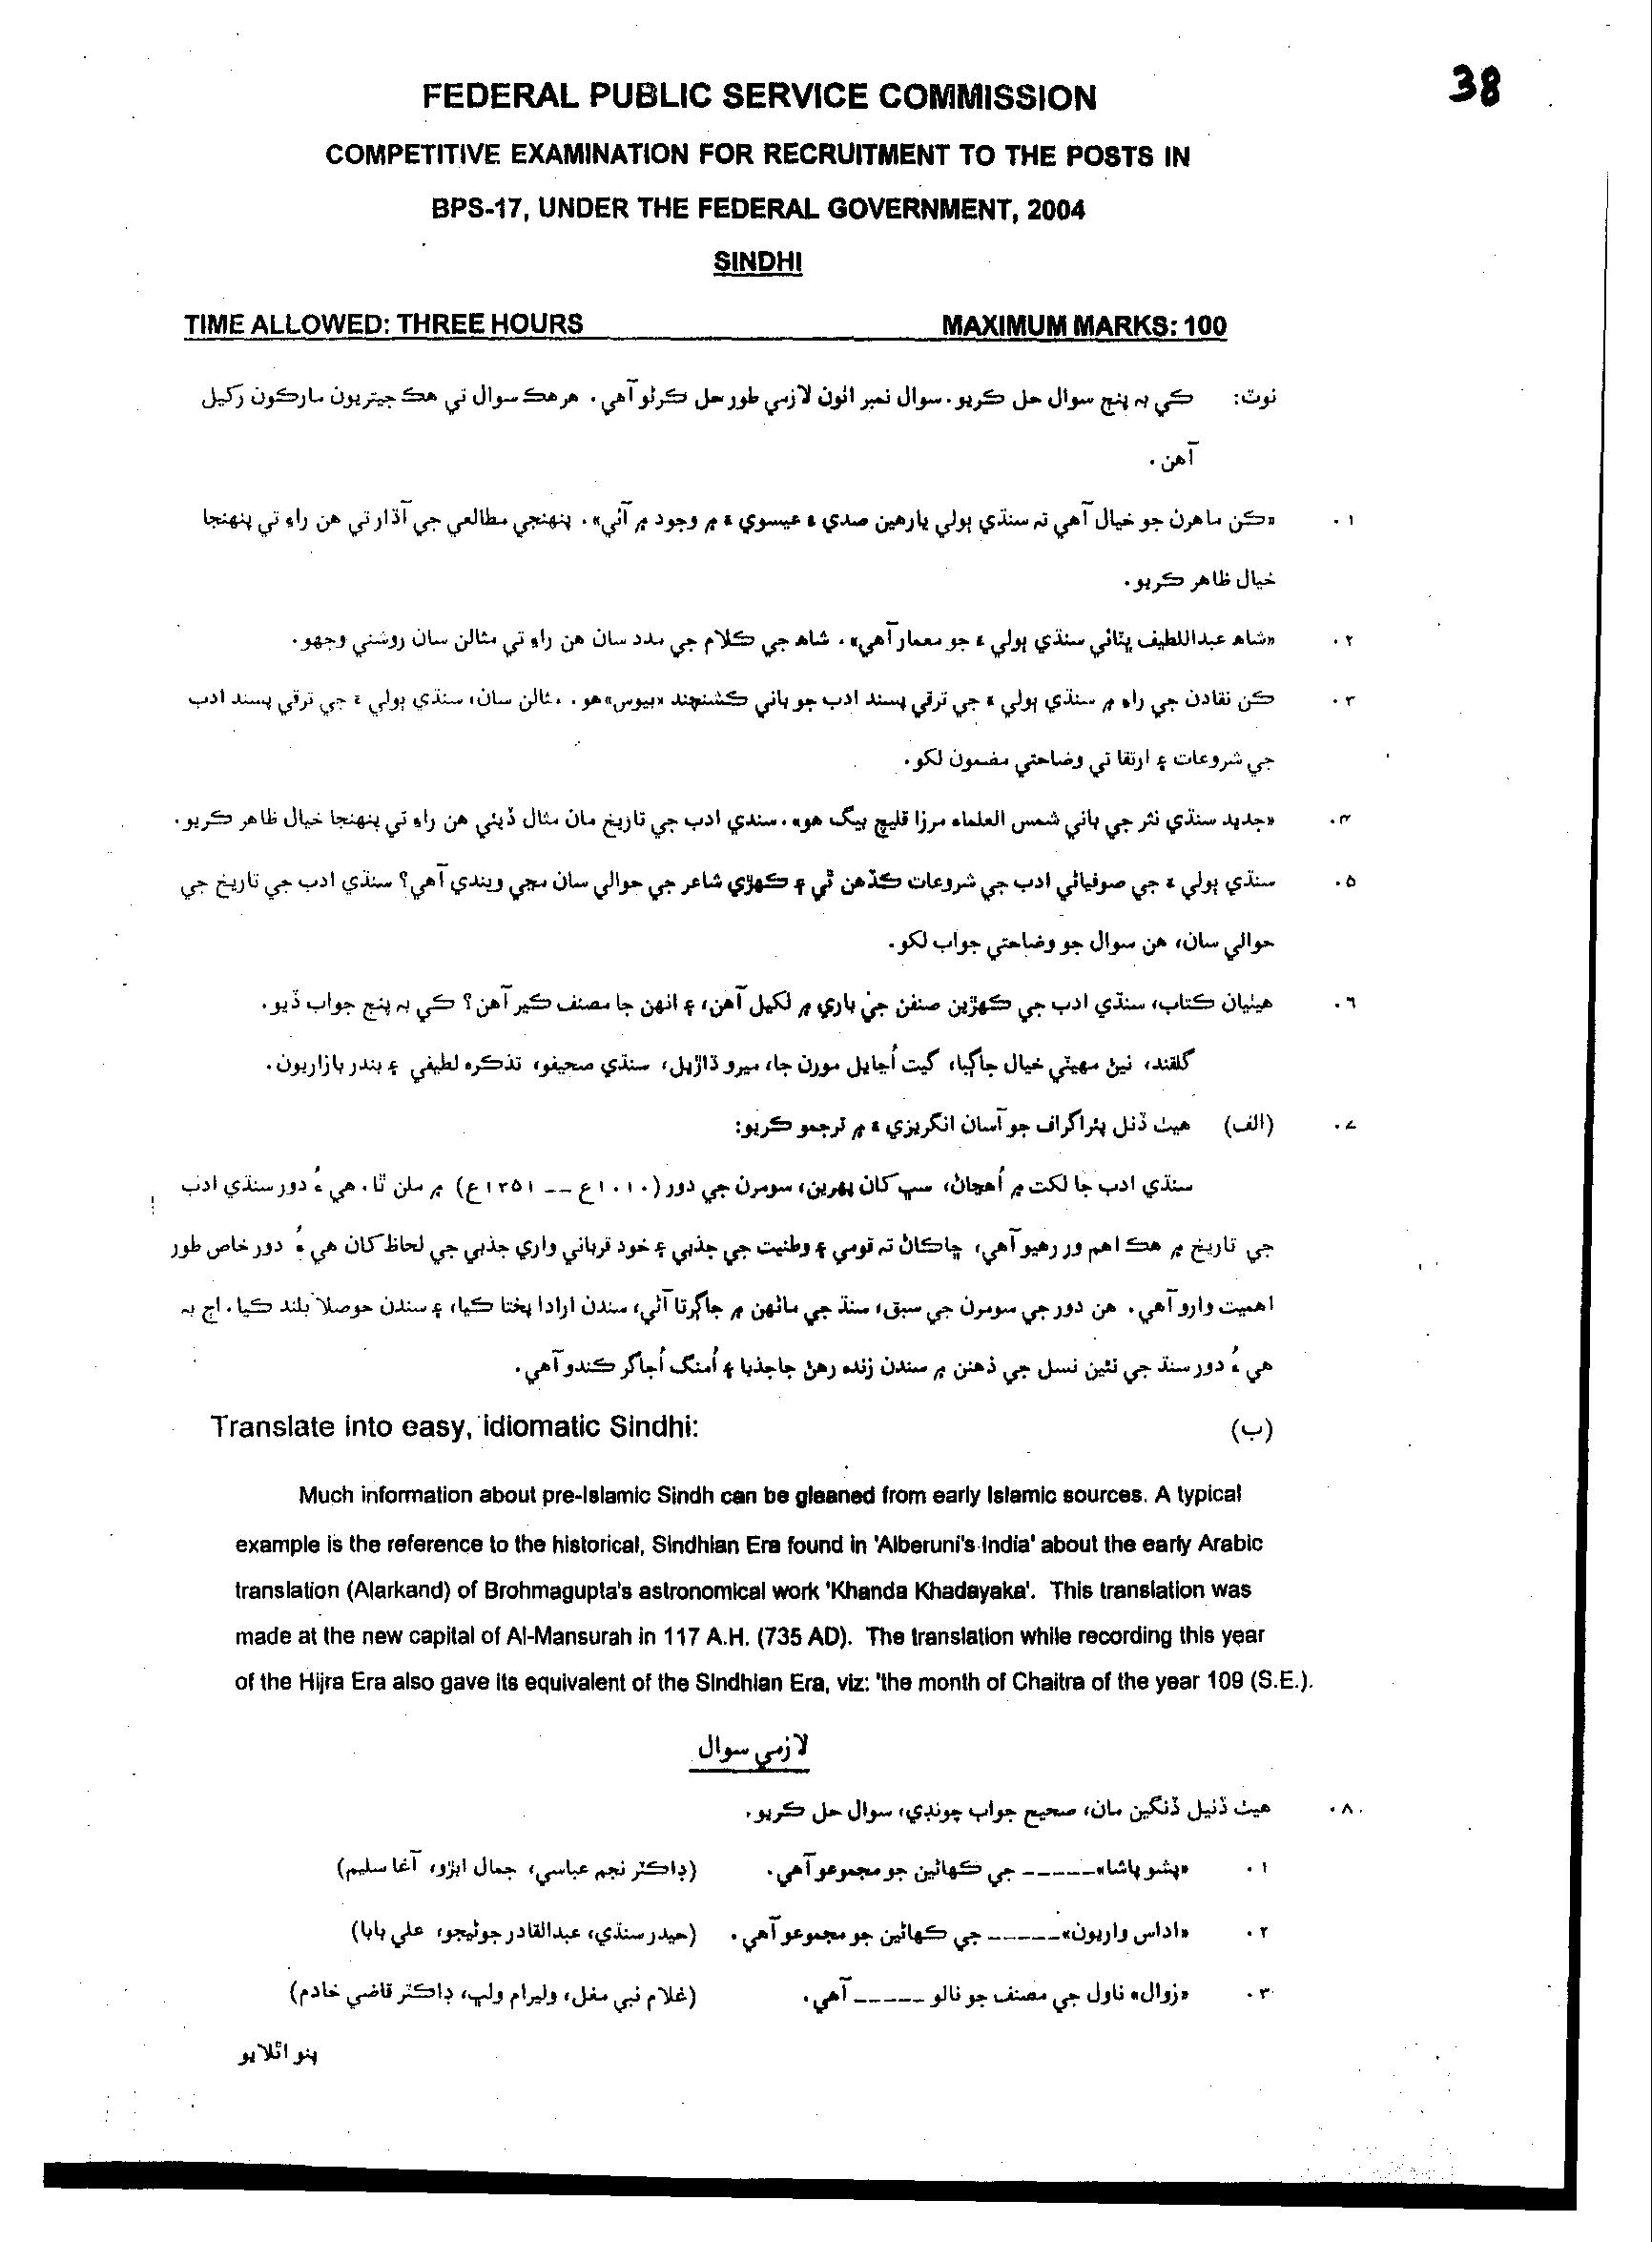 css forum english essay Competitive examination (css) rules & criteria as per the revised fpsc policy download the official rules/regulations and syllabus pdfs below: the revised rules & syllabus of css was published on 8th september, 2016 by the chairman fpsc in accordance with the federal government of pakistan.